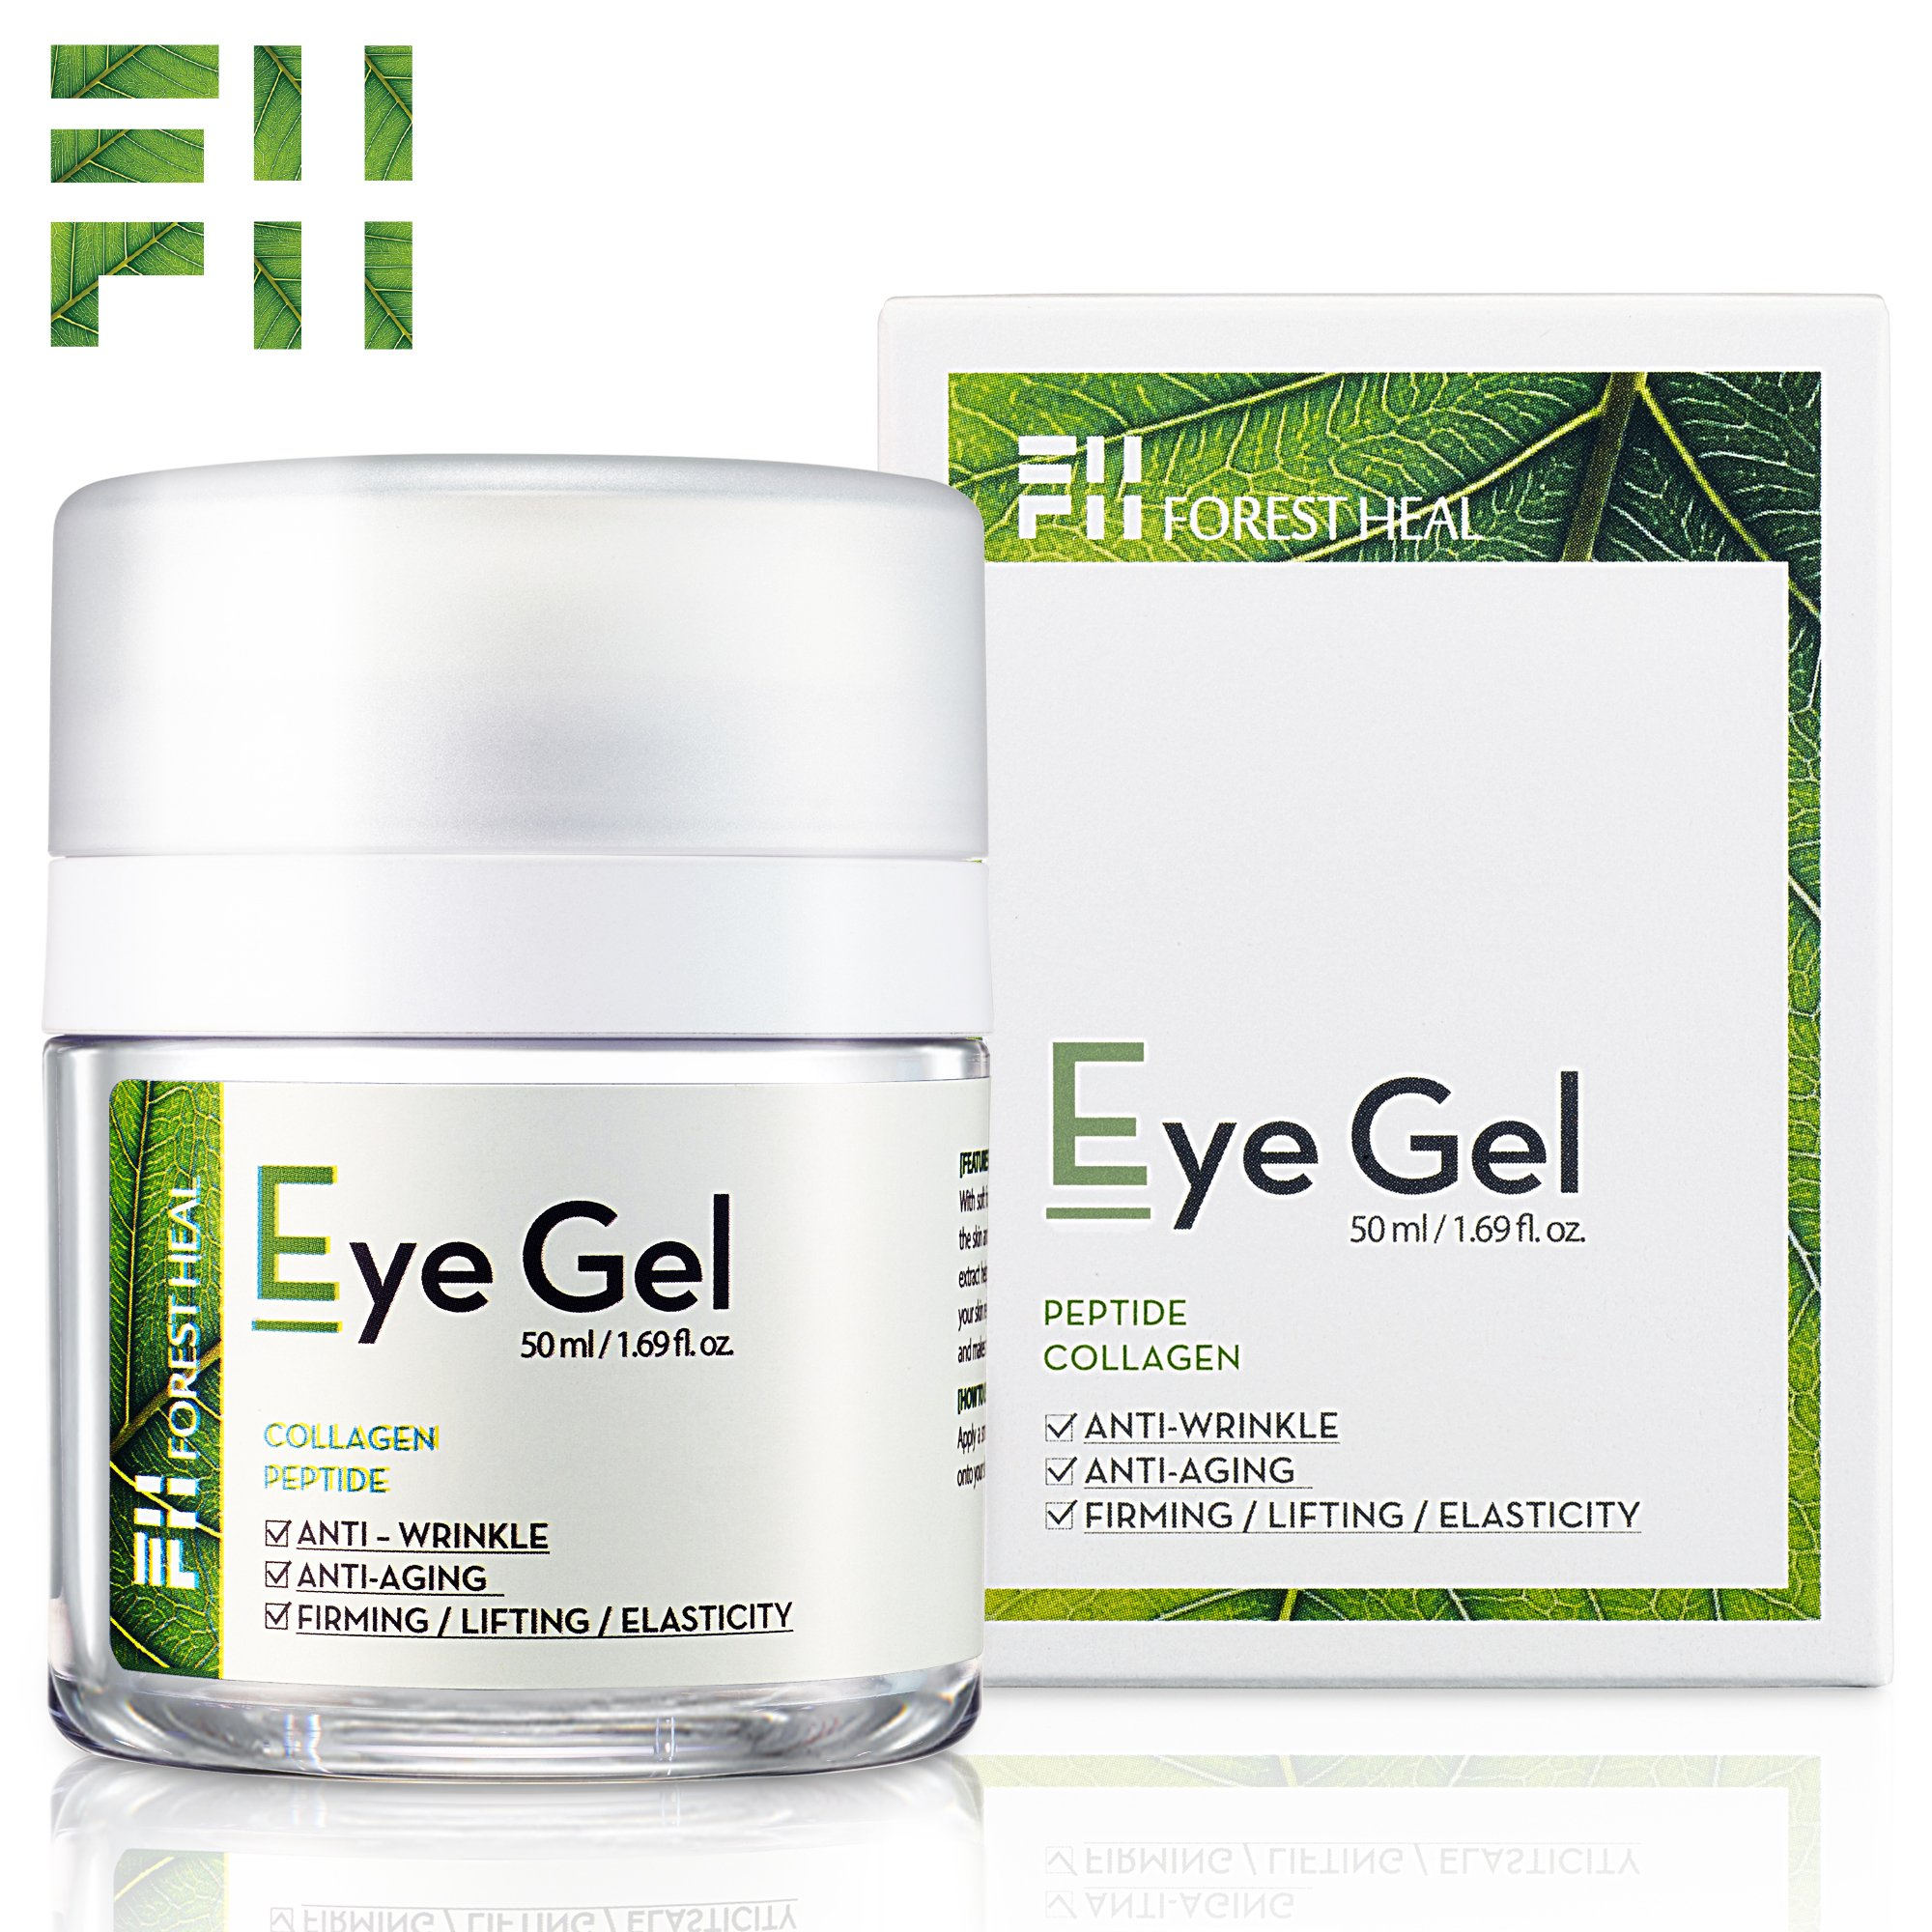 Forest Heal Eye Gel With Collagen Peptides and Niacinamide - Natural Anti Aging, Anti Wrinkle Moisturizer For Under and Around Eyes - 1.69 fl.oz. by Forest Heal (Image #2)